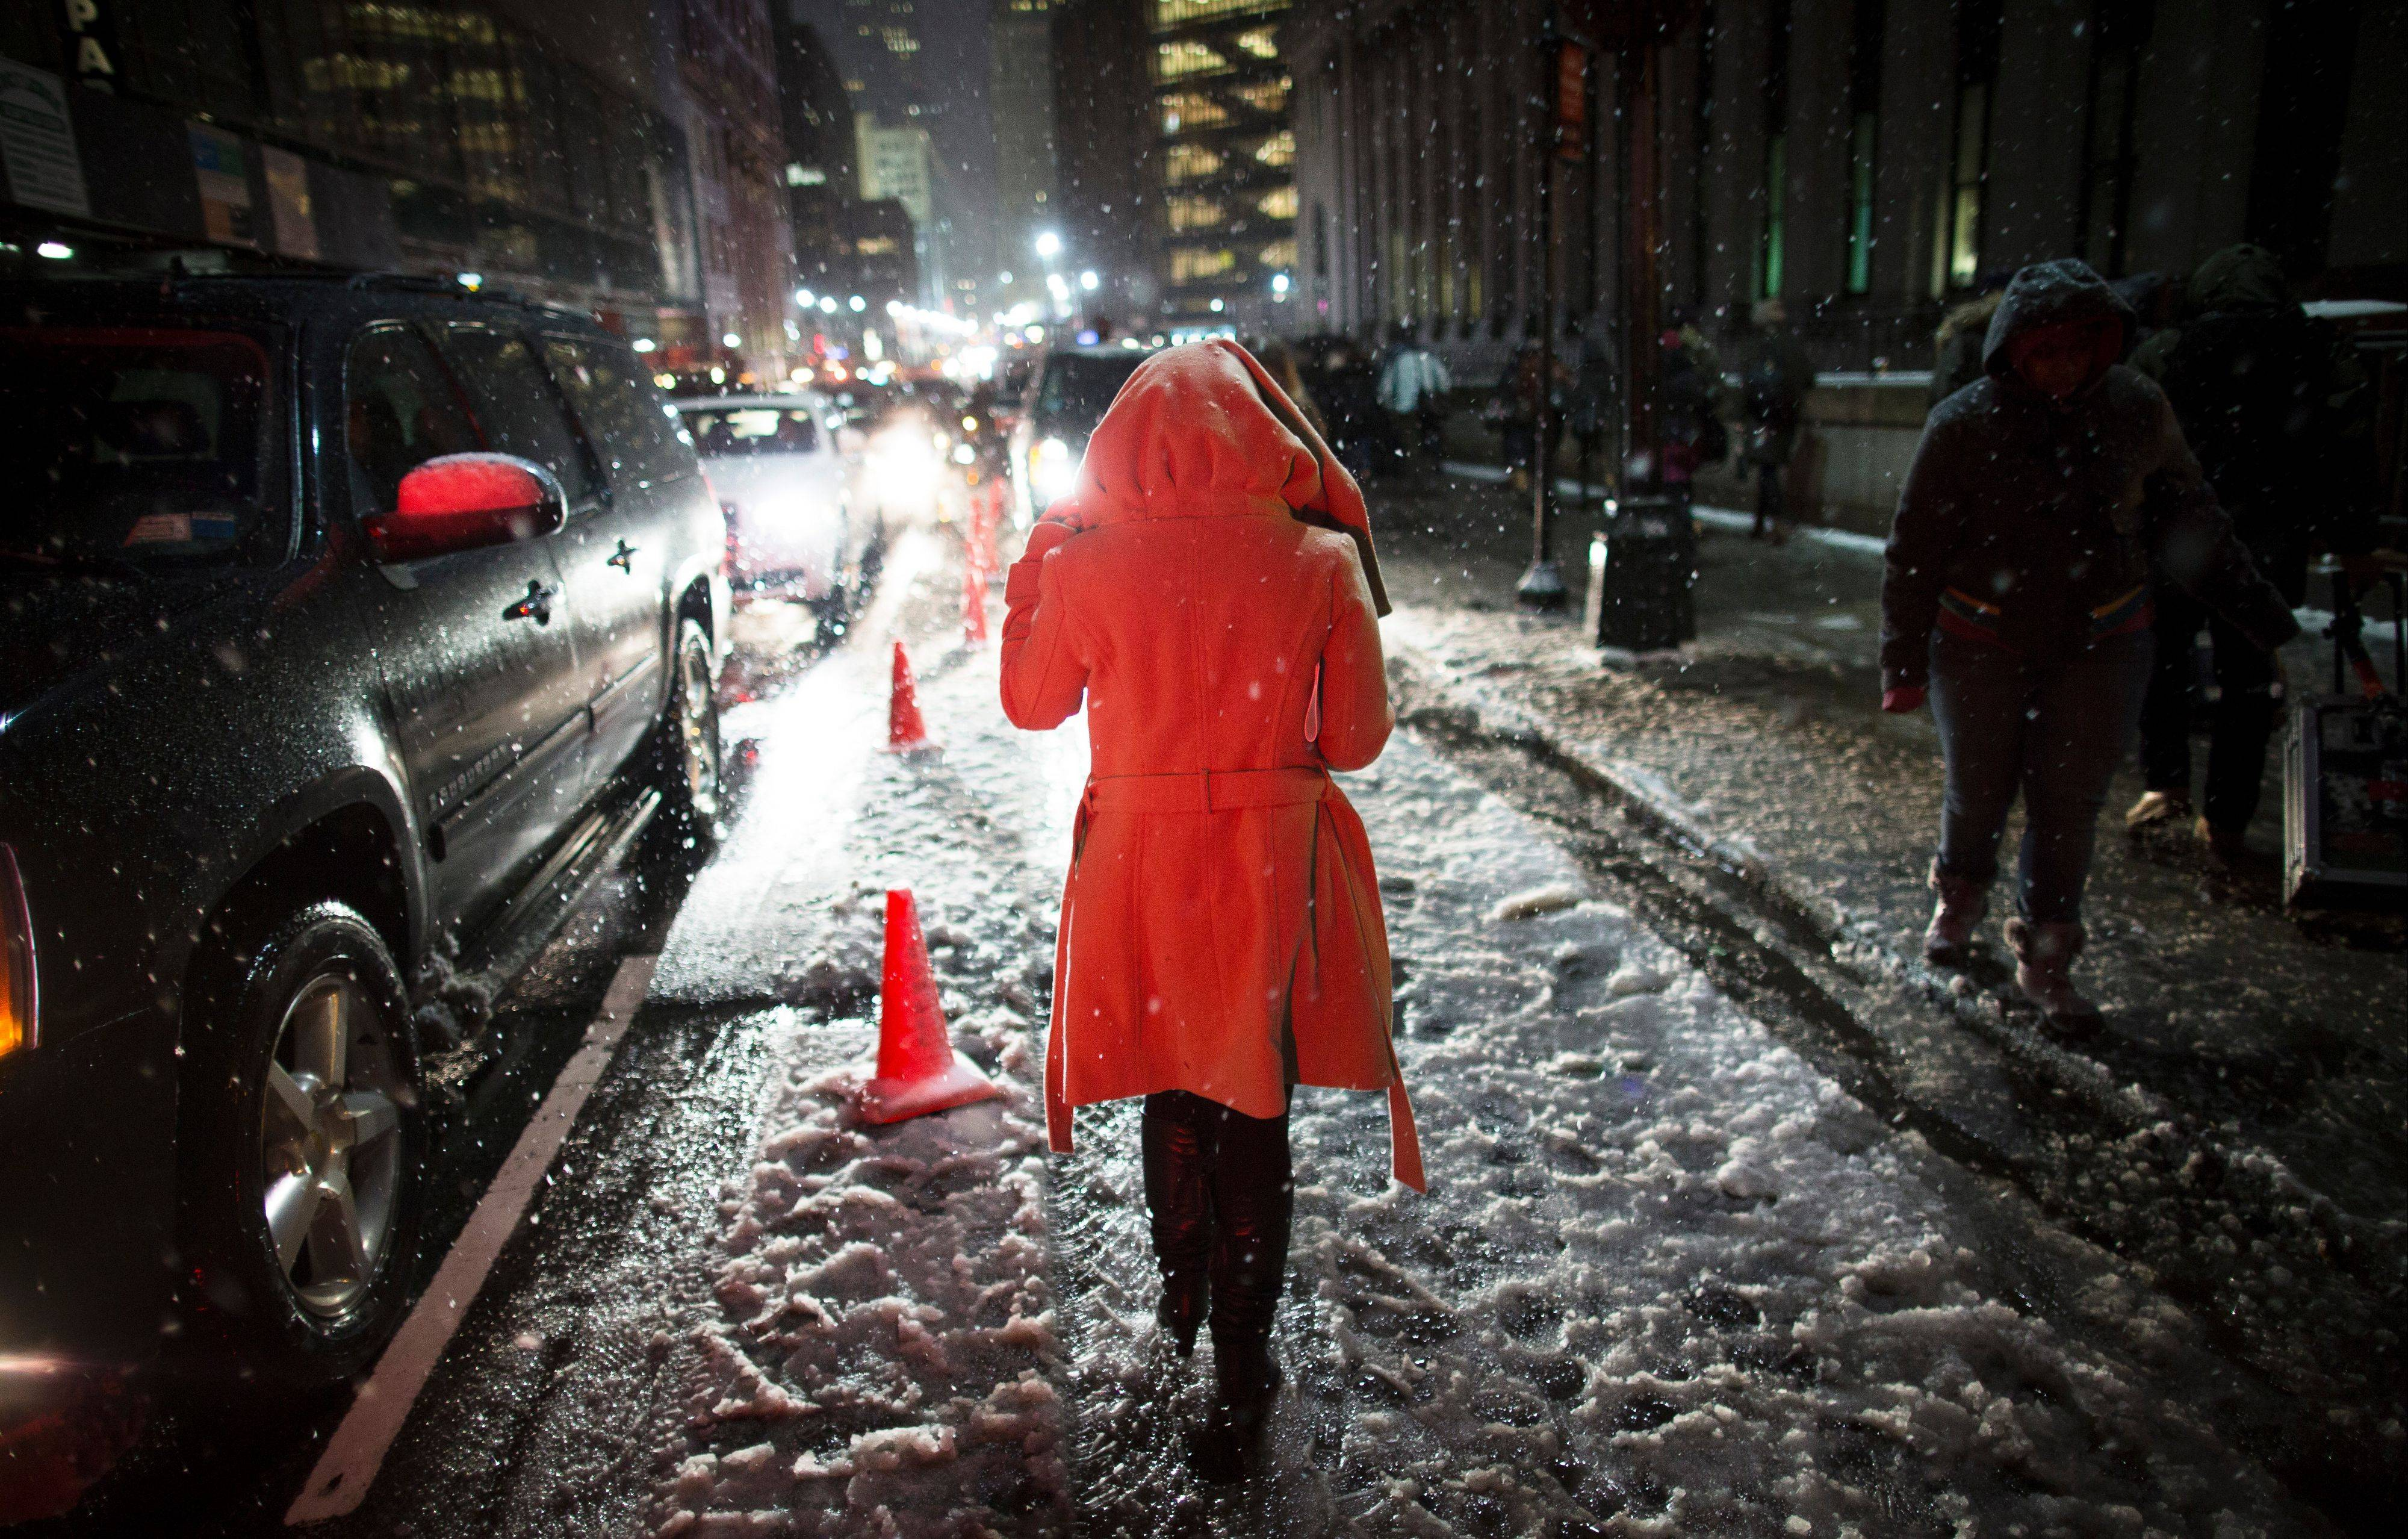 Snow falls on a pedestrian as she leaves the Rag & Bone Fall 2013 fashion collection show during Fashion Week, Friday, Feb. 8, 2013, in New York. Snow began falling across the Northeast on Friday, ushering in what was predicted to be a huge, possibly historic blizzard and sending residents scurrying to stock up on food and gas up their cars.